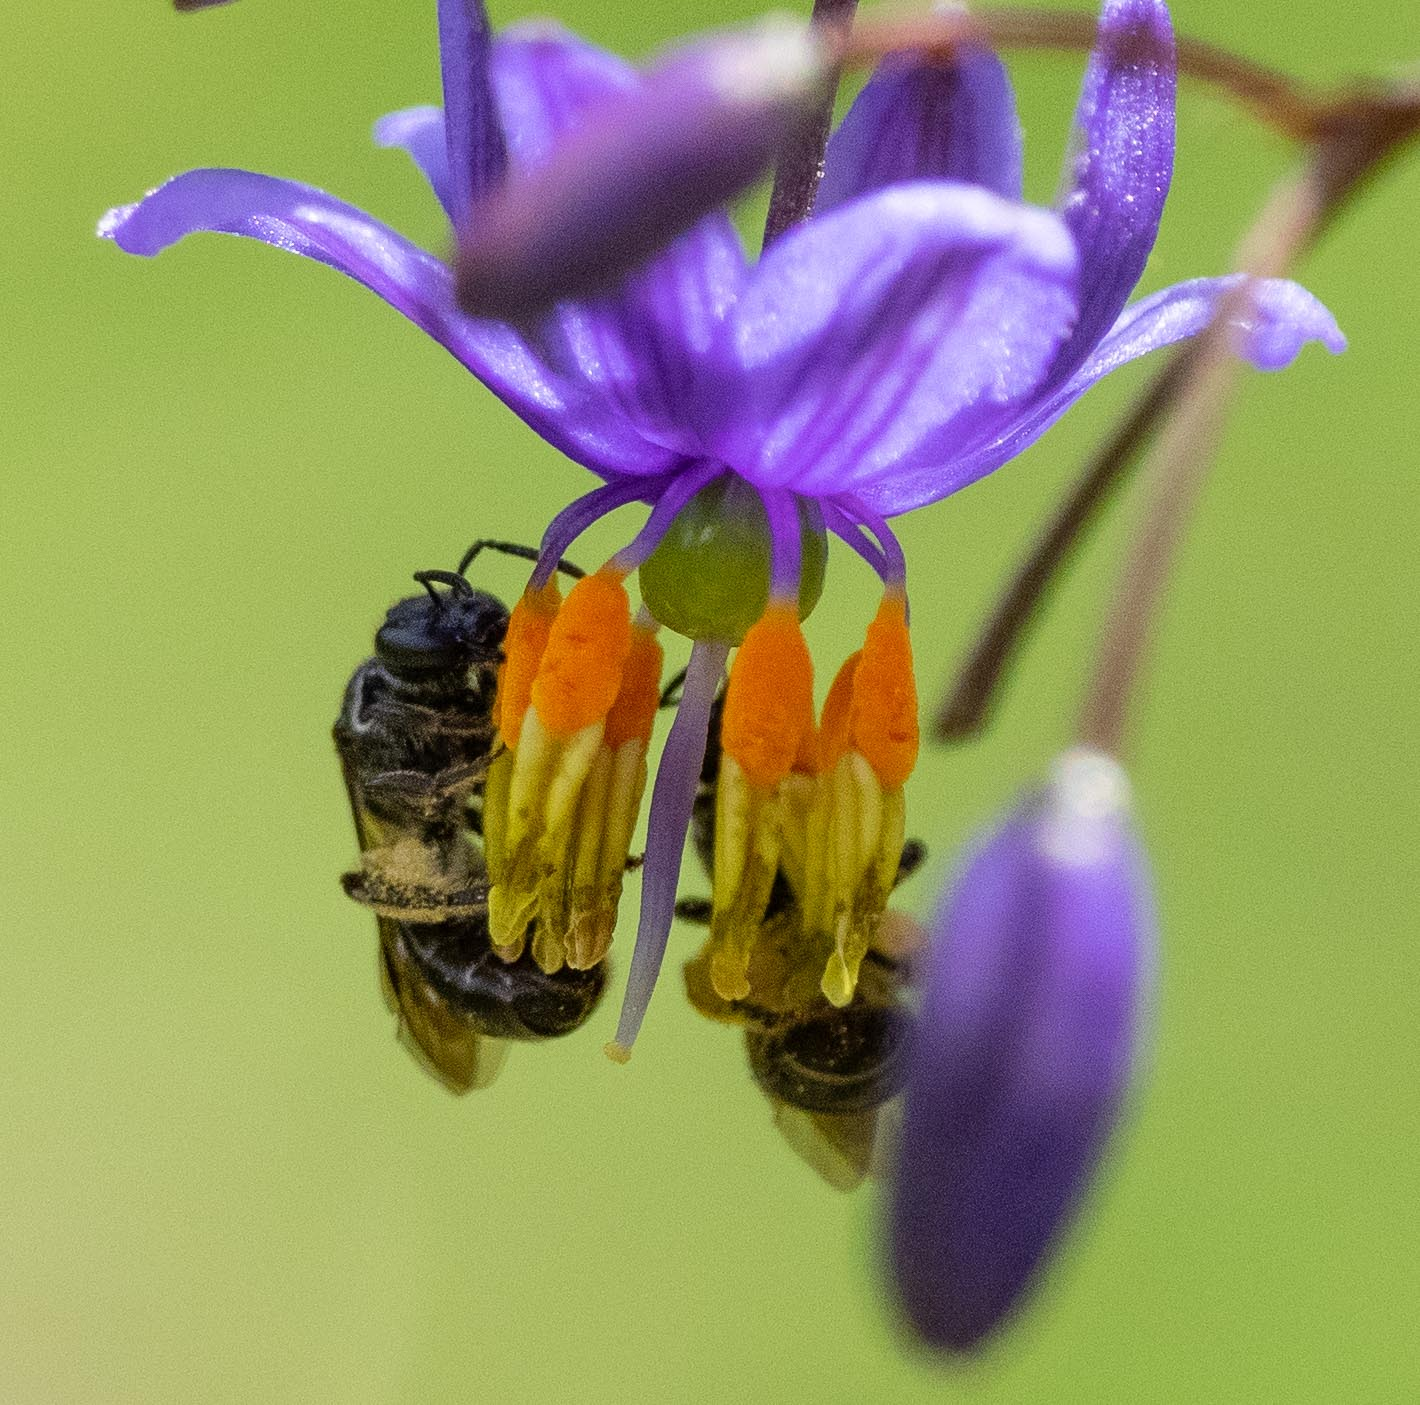 Small female bees (~5mm long) working the anthers of  Dianella  flowers